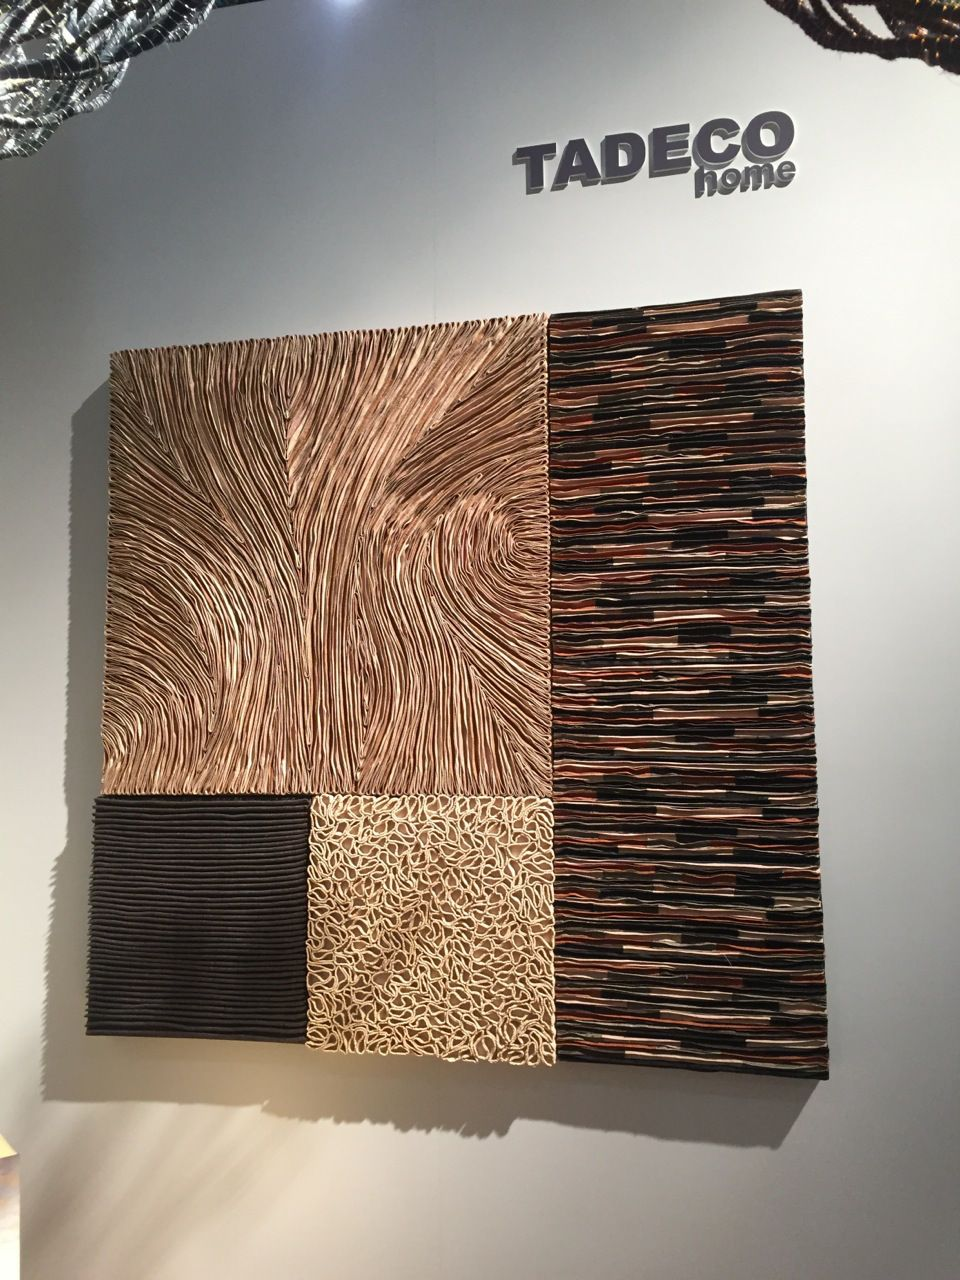 Tadeco-Wall-Tiles